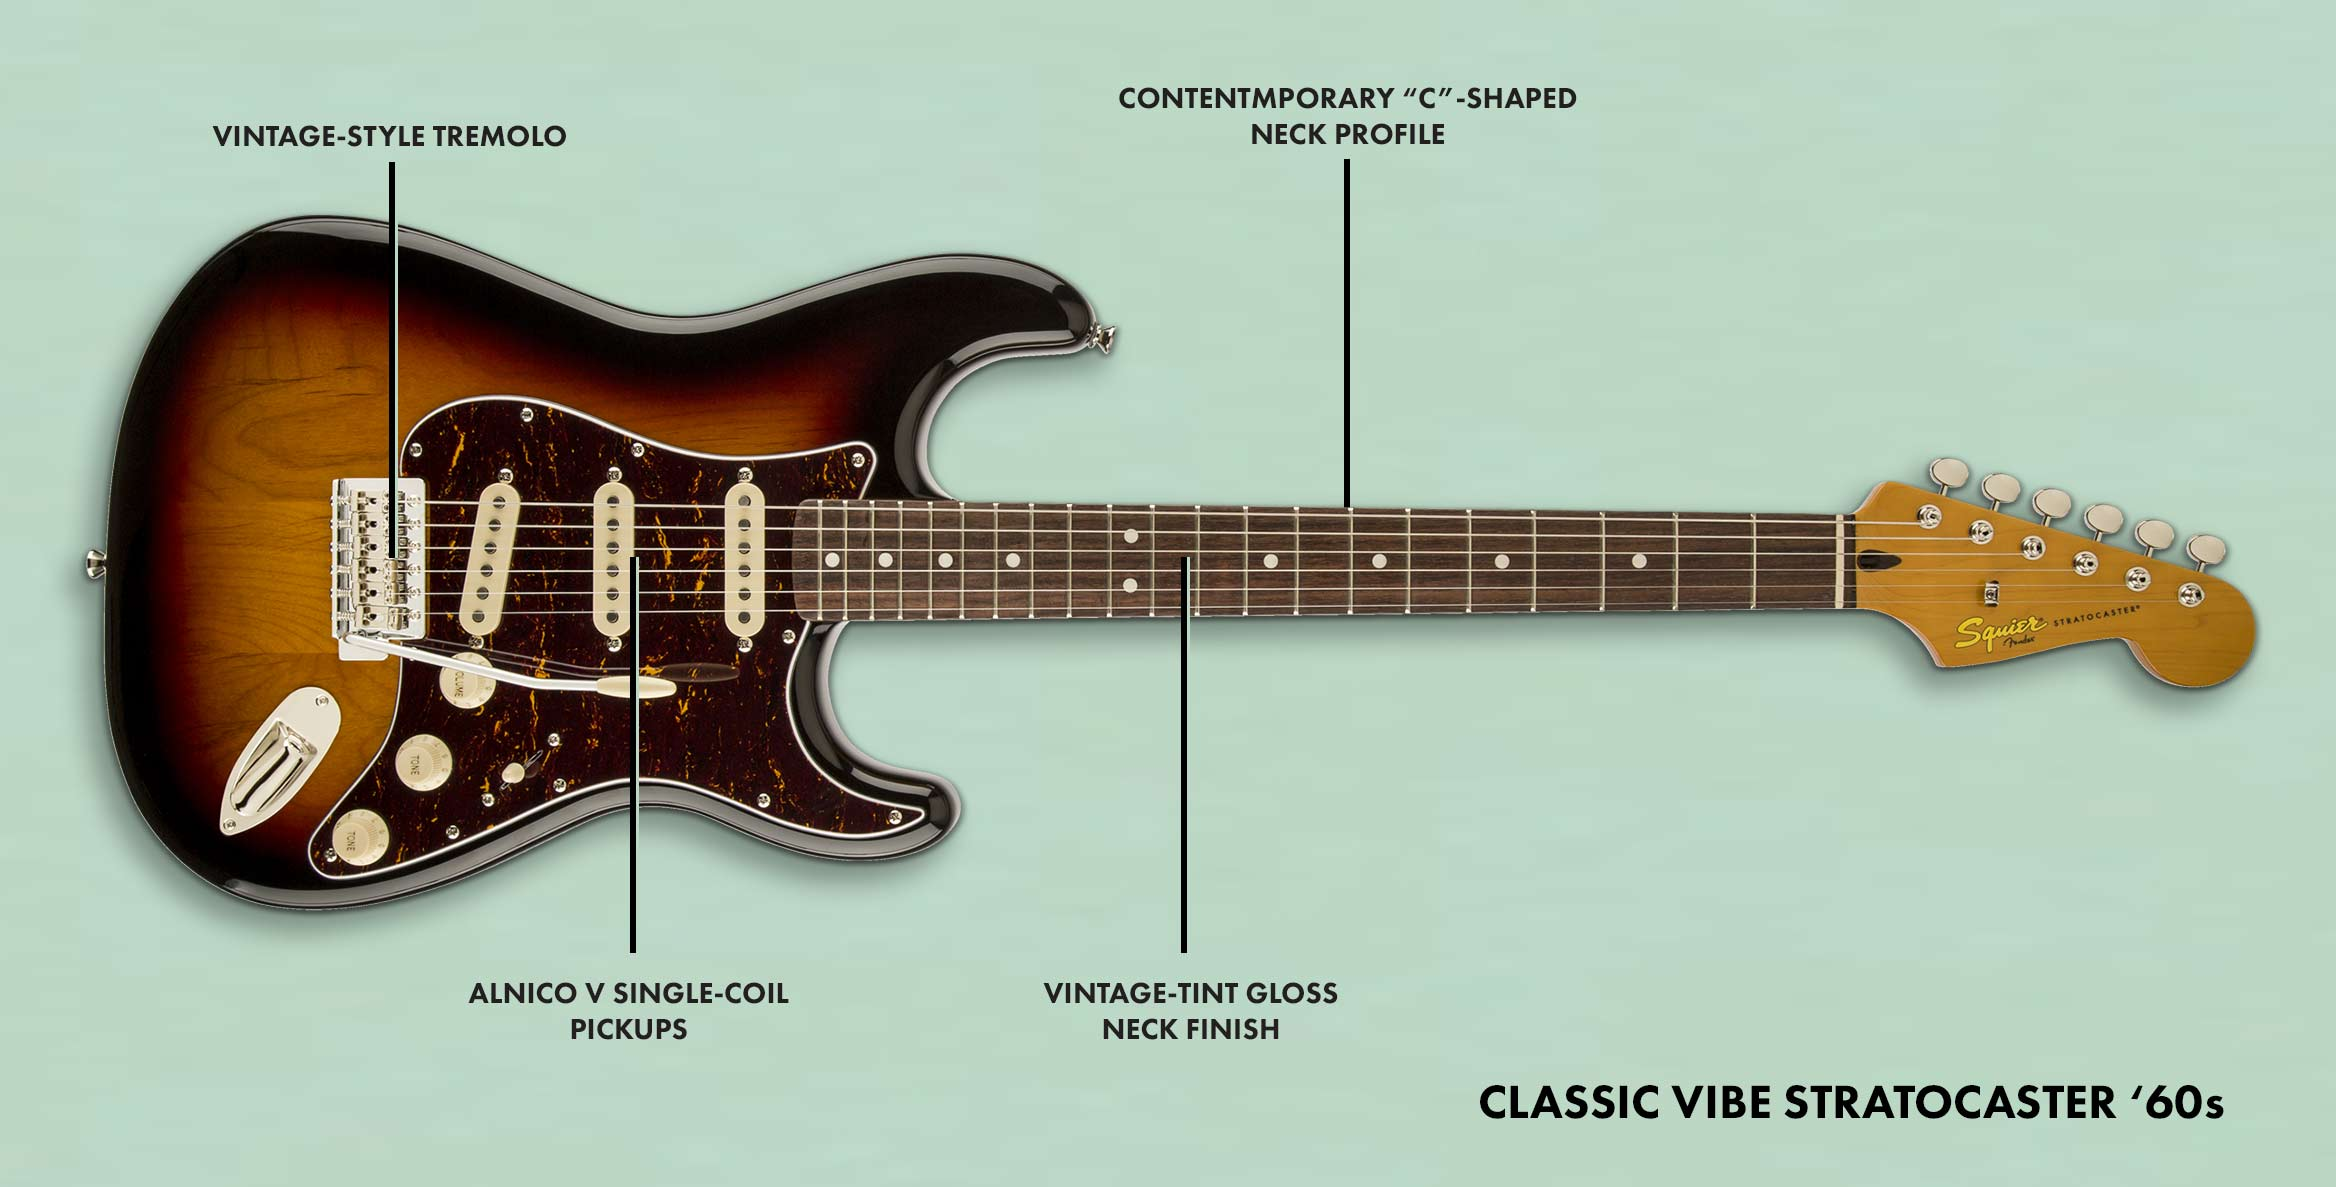 Stratocaster 50s and 60s